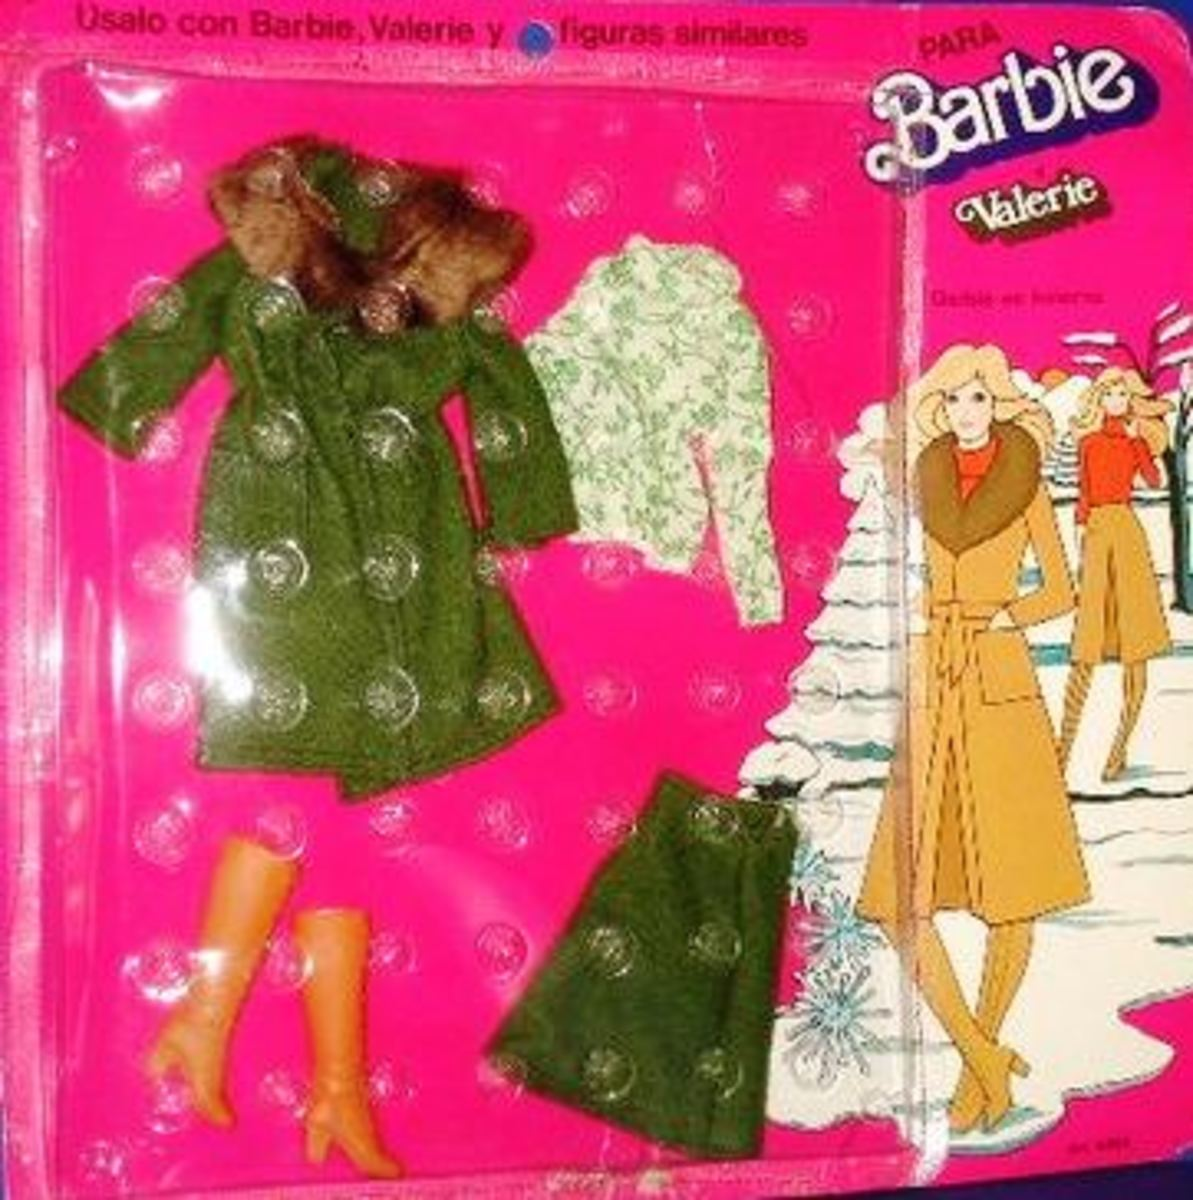 Barbie Doll's World in 1975